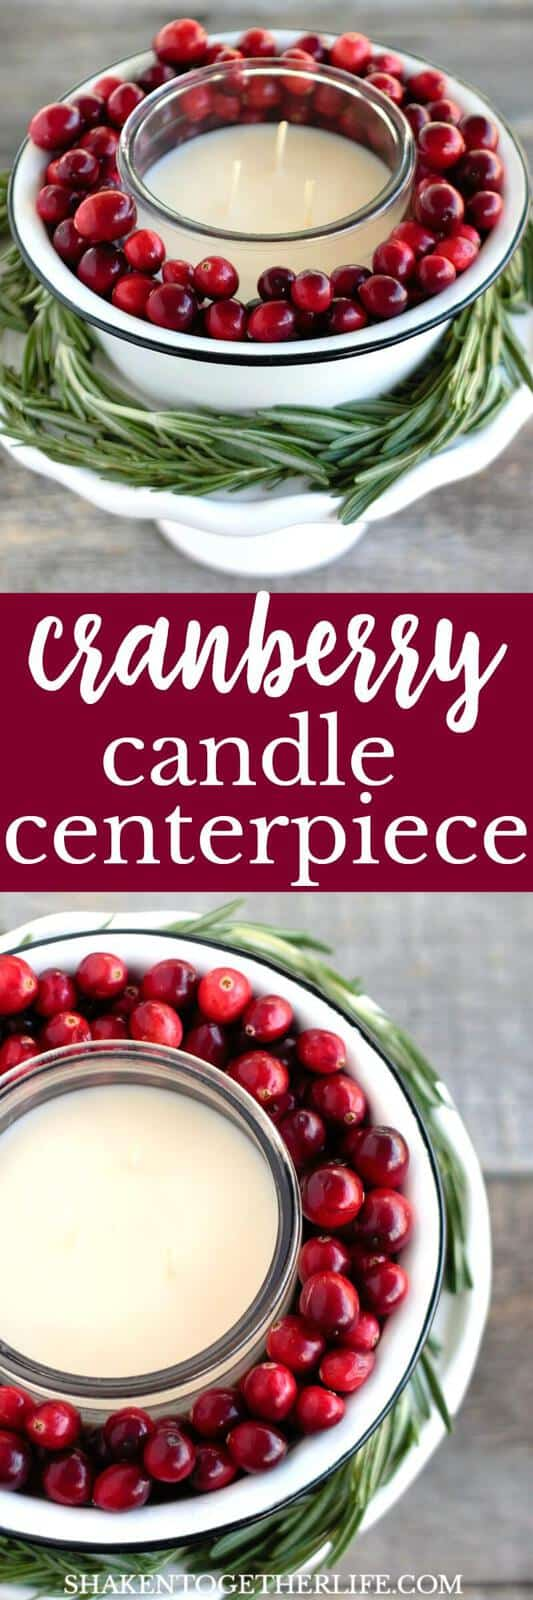 Make an Easy Cranberry Candle Centerpieces with festive fresh cranberries and fragrant fresh rosemary! This is easy holiday decorating at its finest!